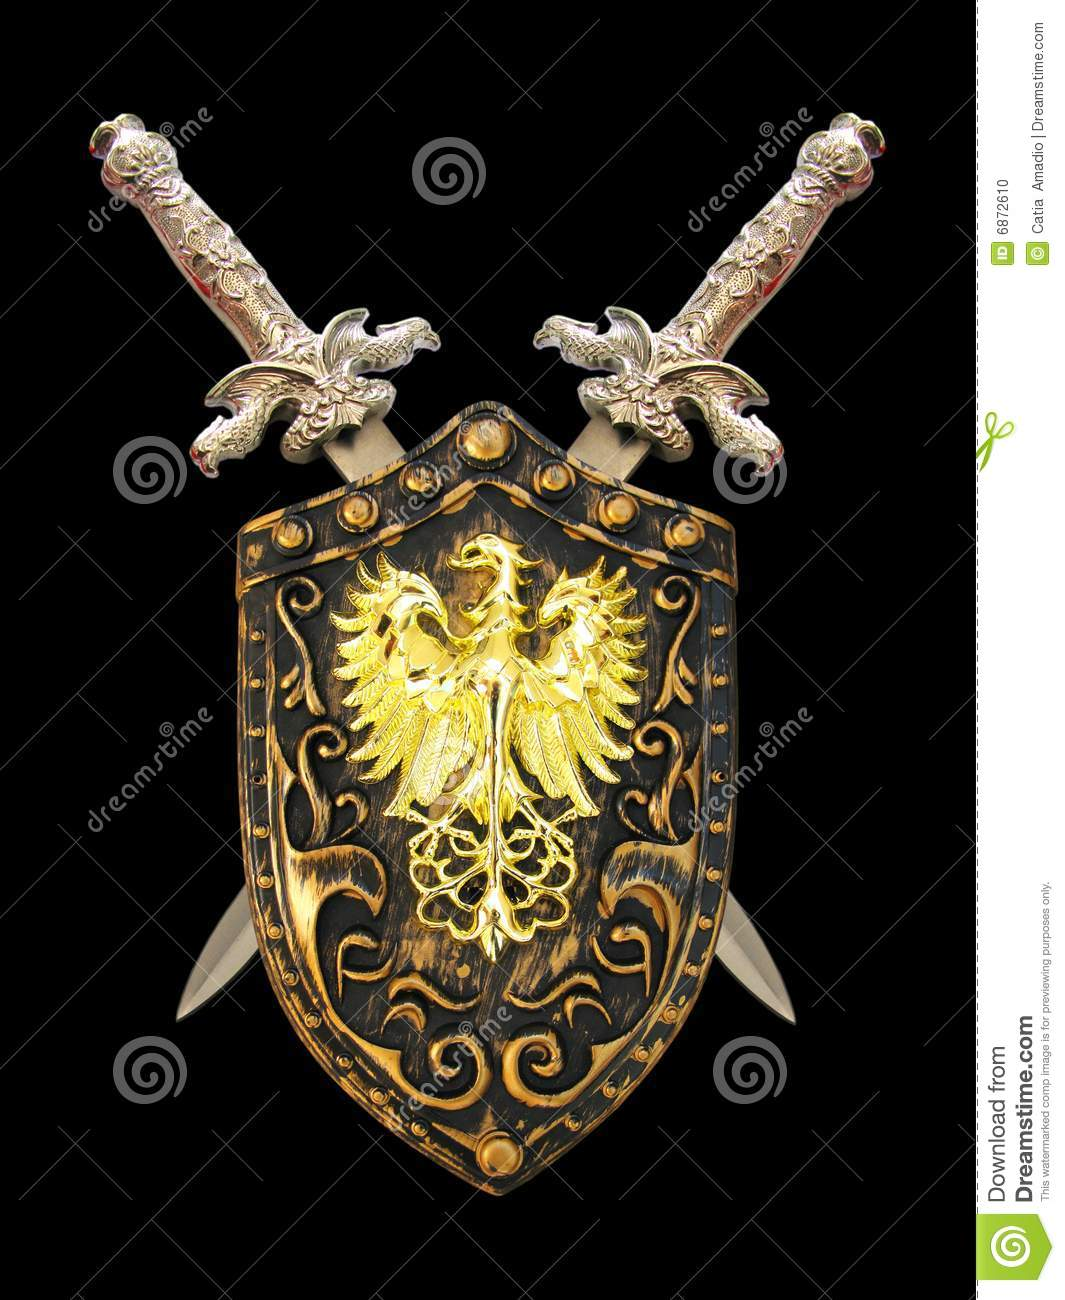 swords and shield stock photo image 6872610